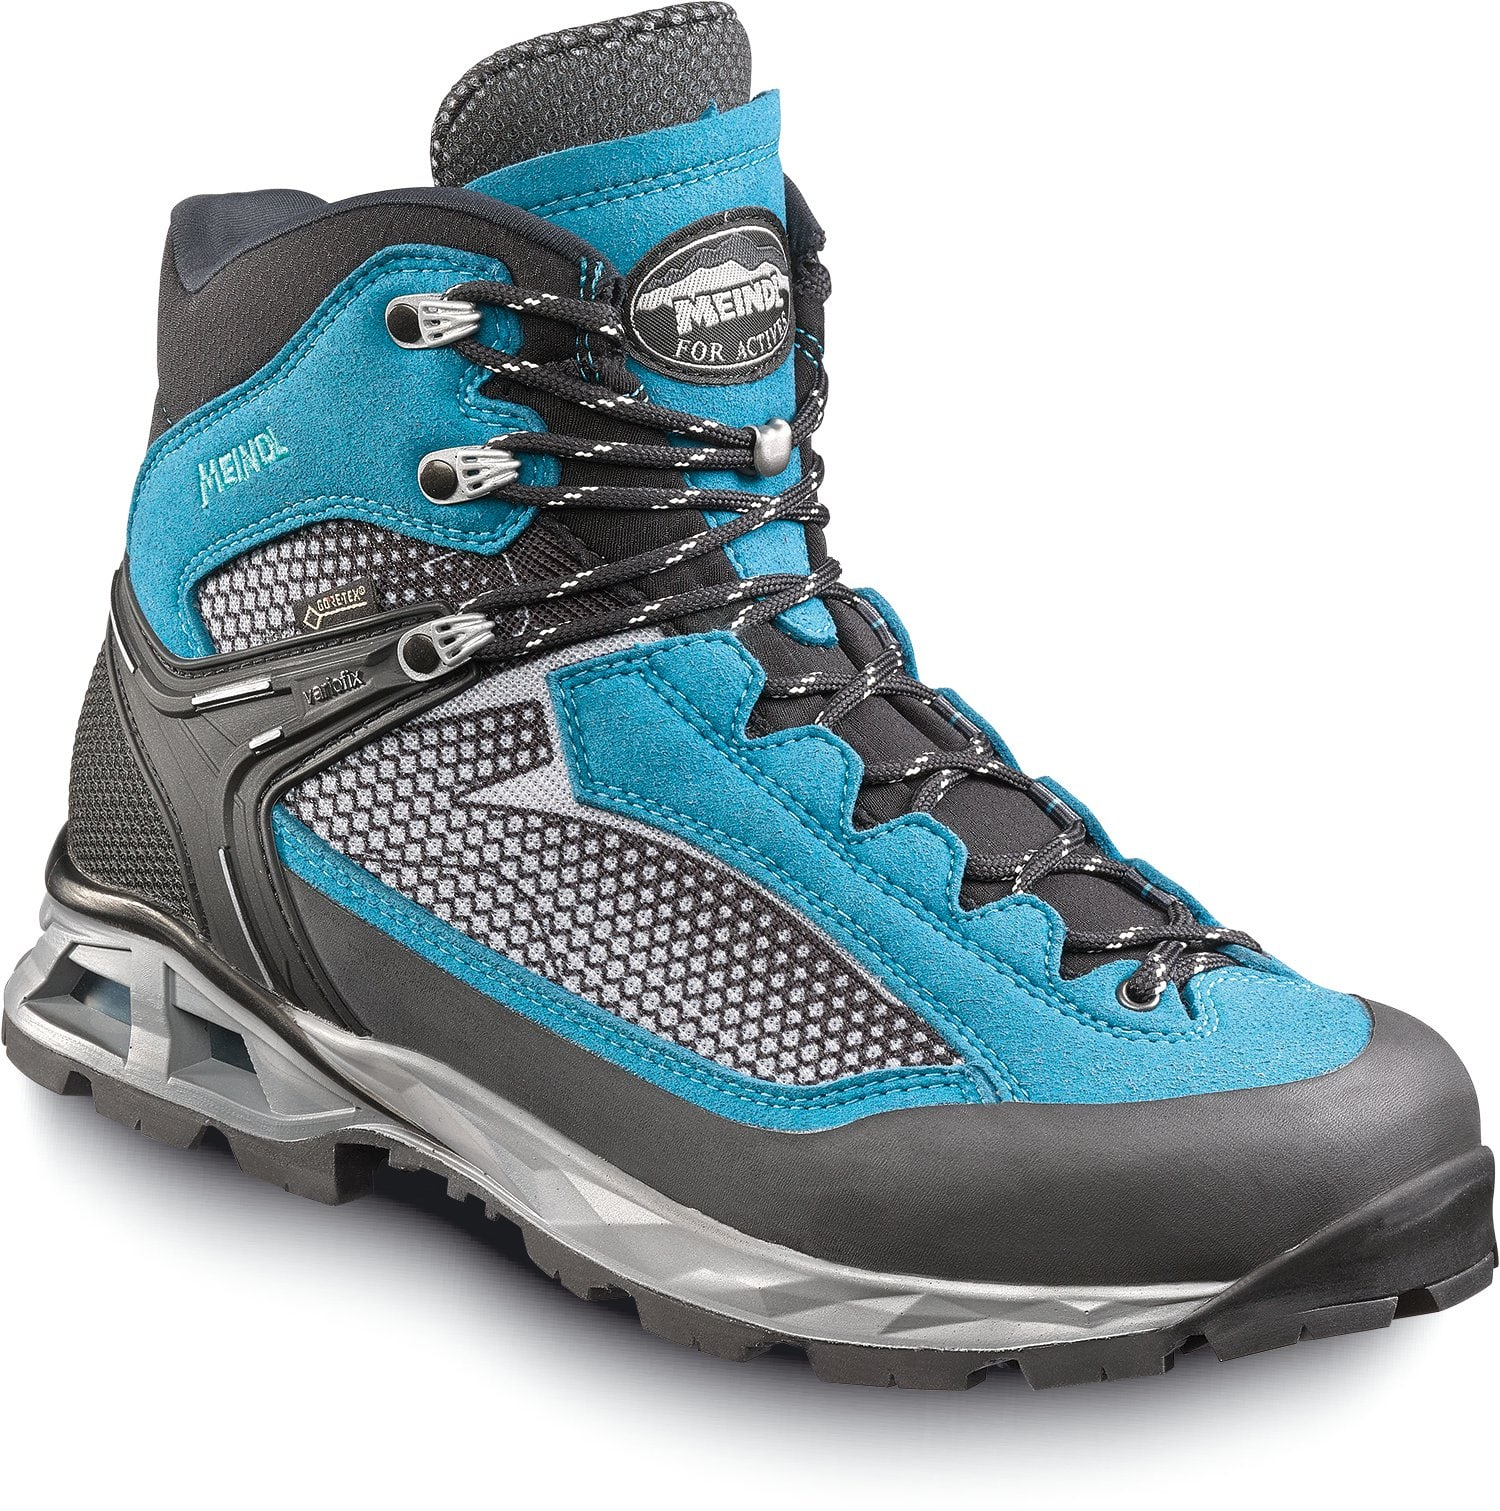 Meindl Air Revolution 3.7 Damen-Trekkingschuh